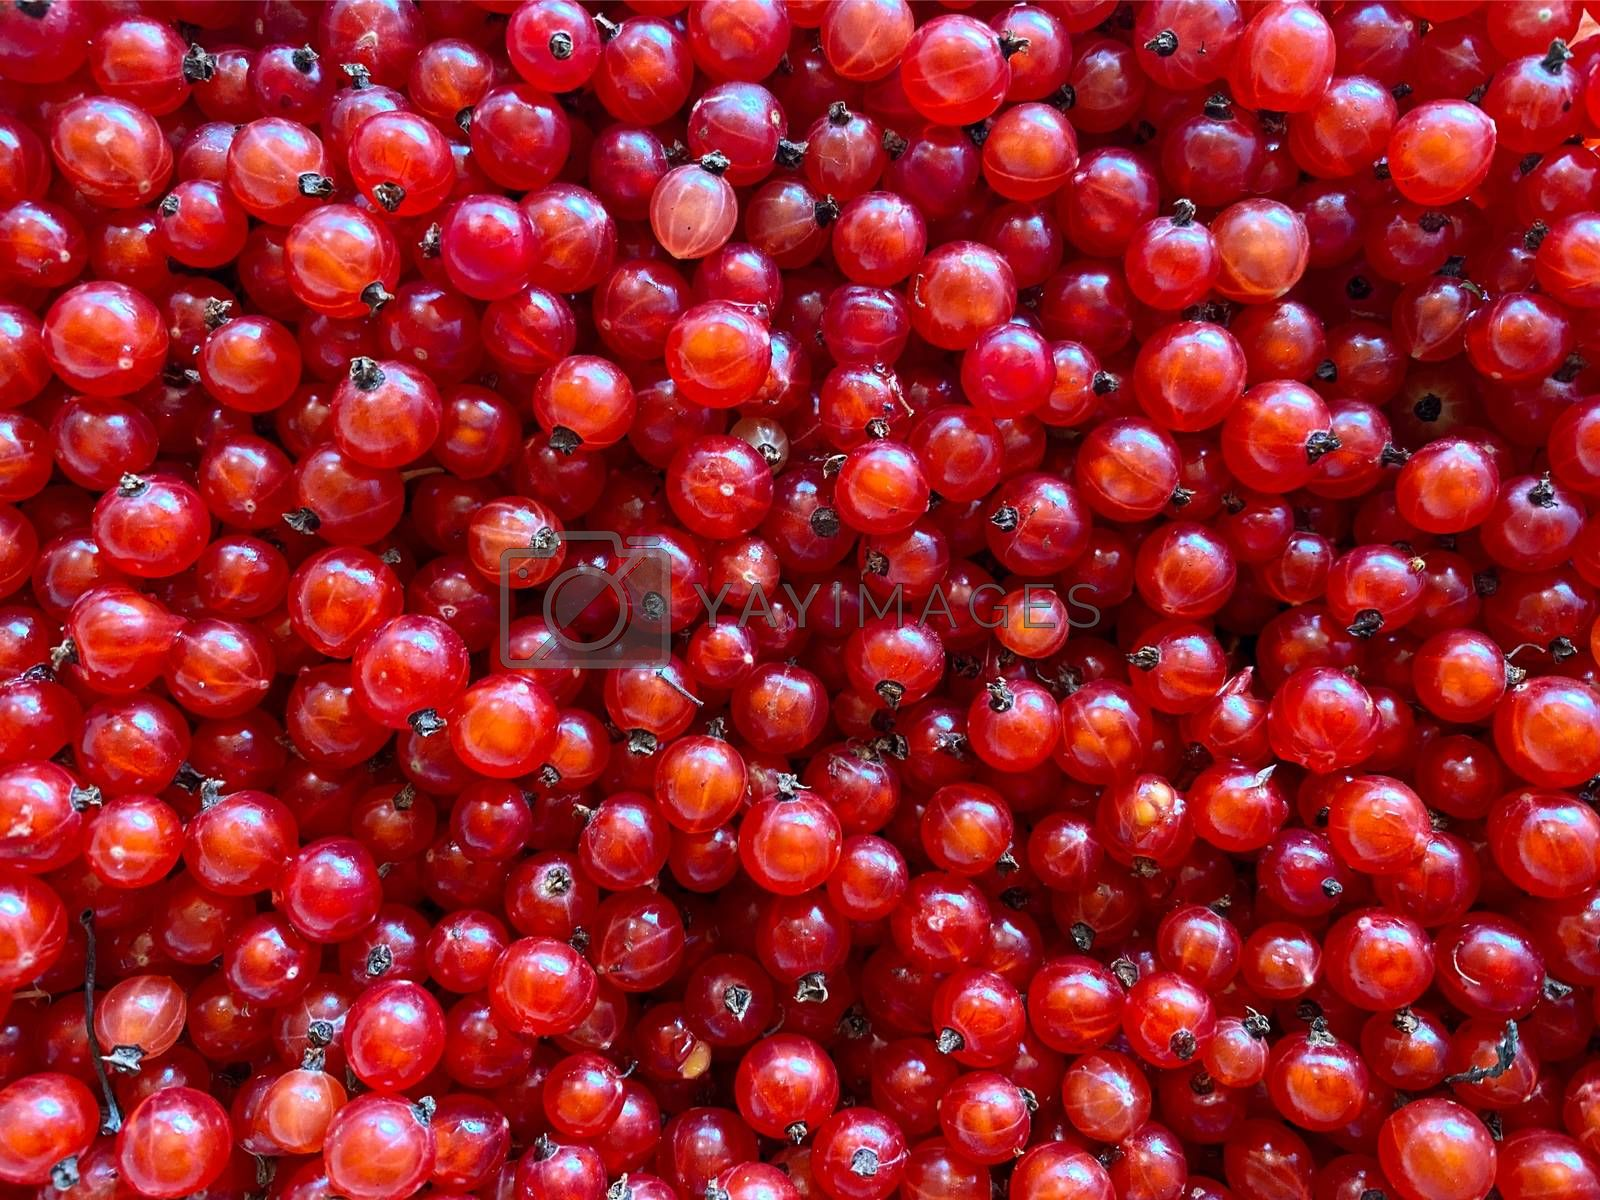 Background of ripe juicy red currant berries. Ripe Delicious berries. Healthy food organic concept.